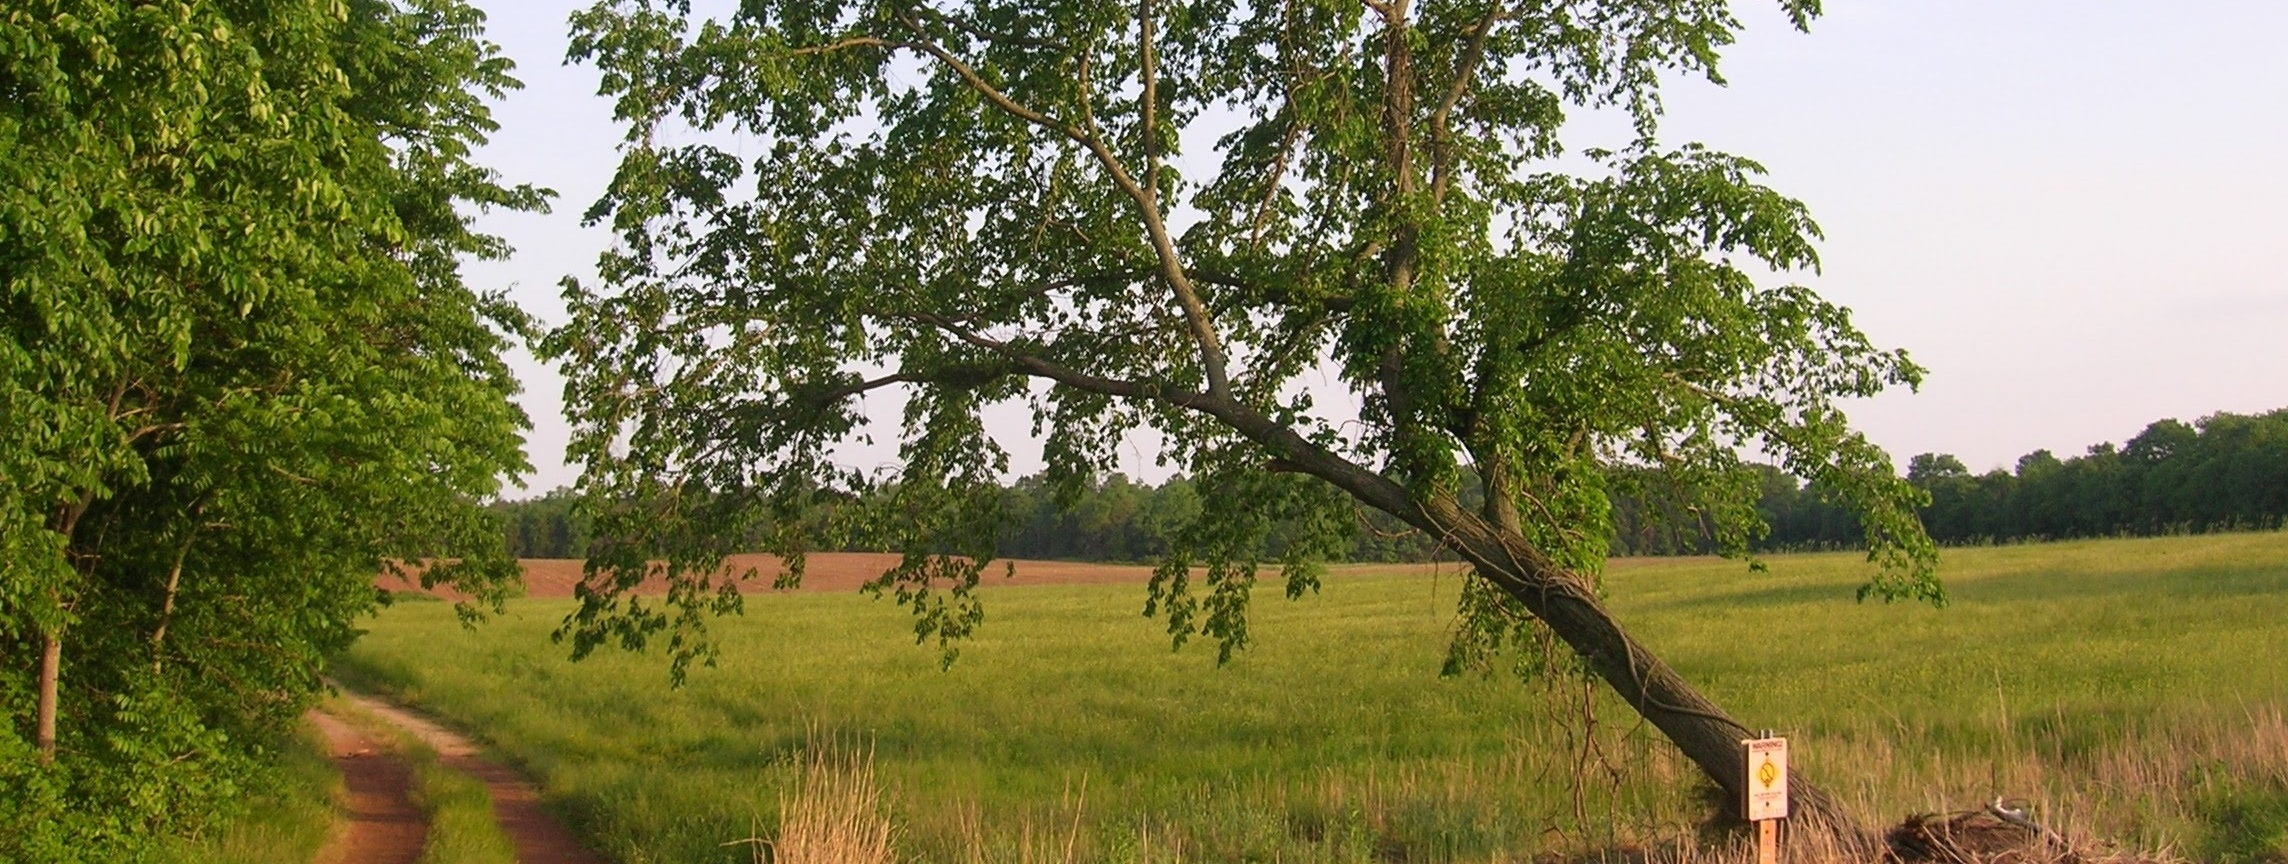 A lopsided tree in the back field of the farm I grew up on, next to the railroad tracks. A dirt driveway runs next to it to the field behind.